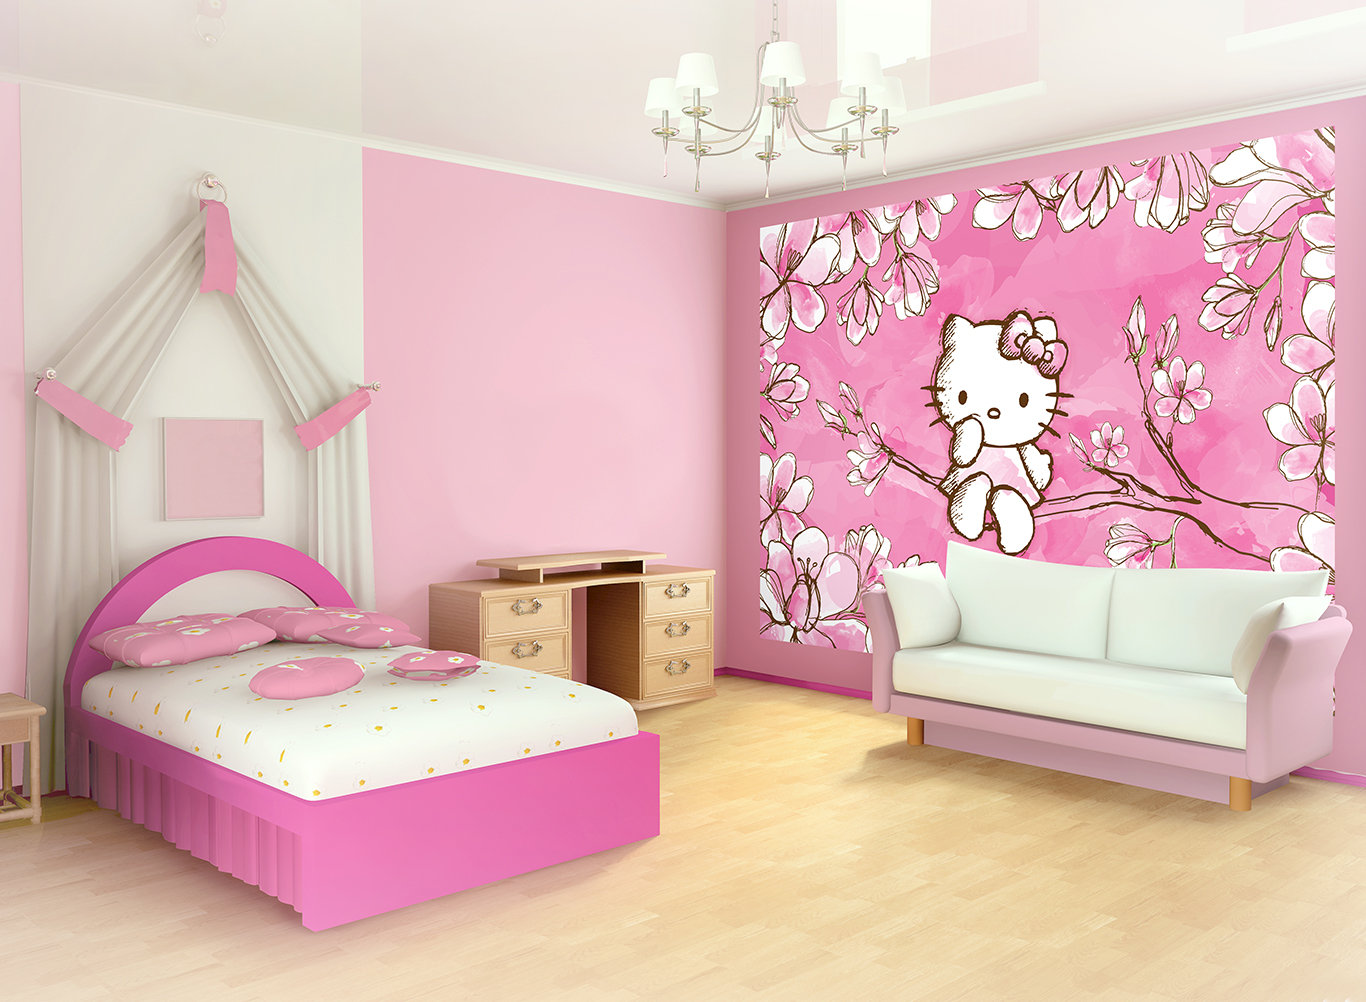 D co chambre fille hello kitty for Chambre enfant fille hello kitty